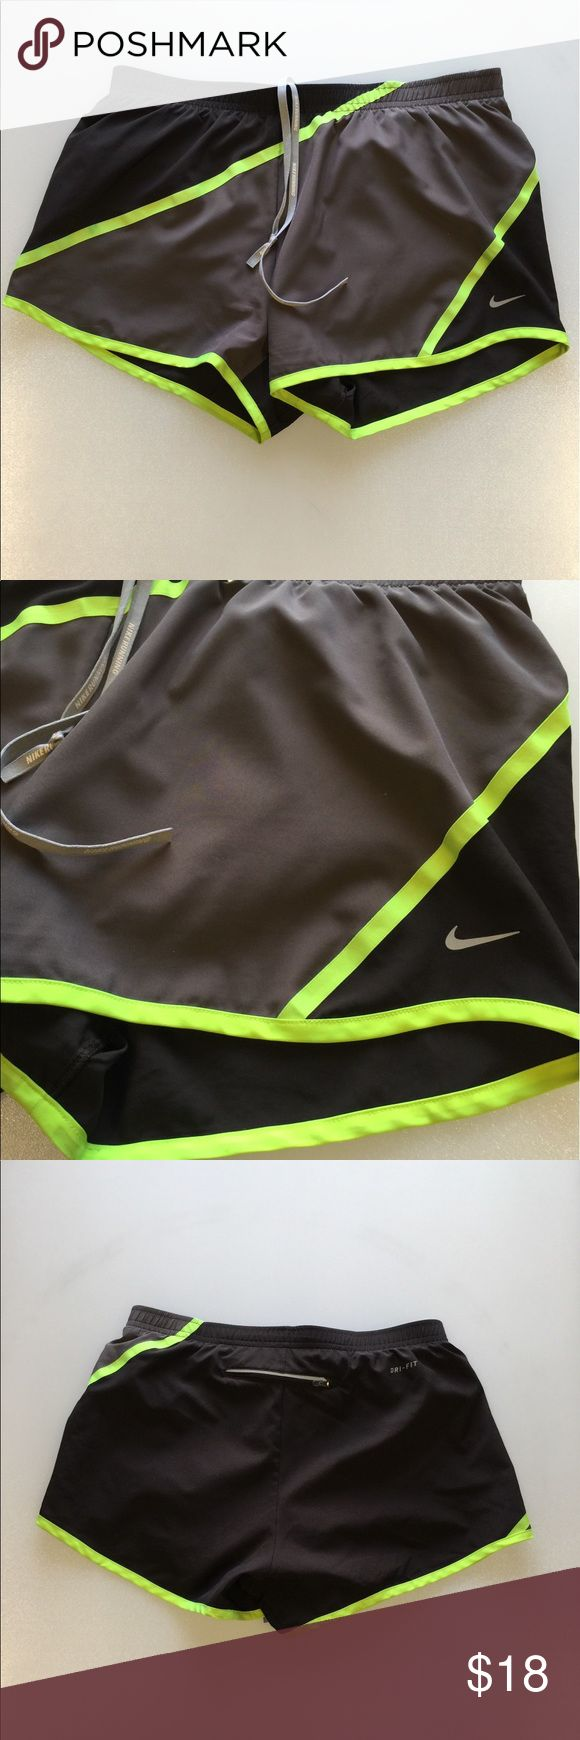 Nike Running Shorts Nike Women's Running Shorts  Size Small  Dri fit  Inside liner  Rear pocket  Very Good Condition Nike Shorts